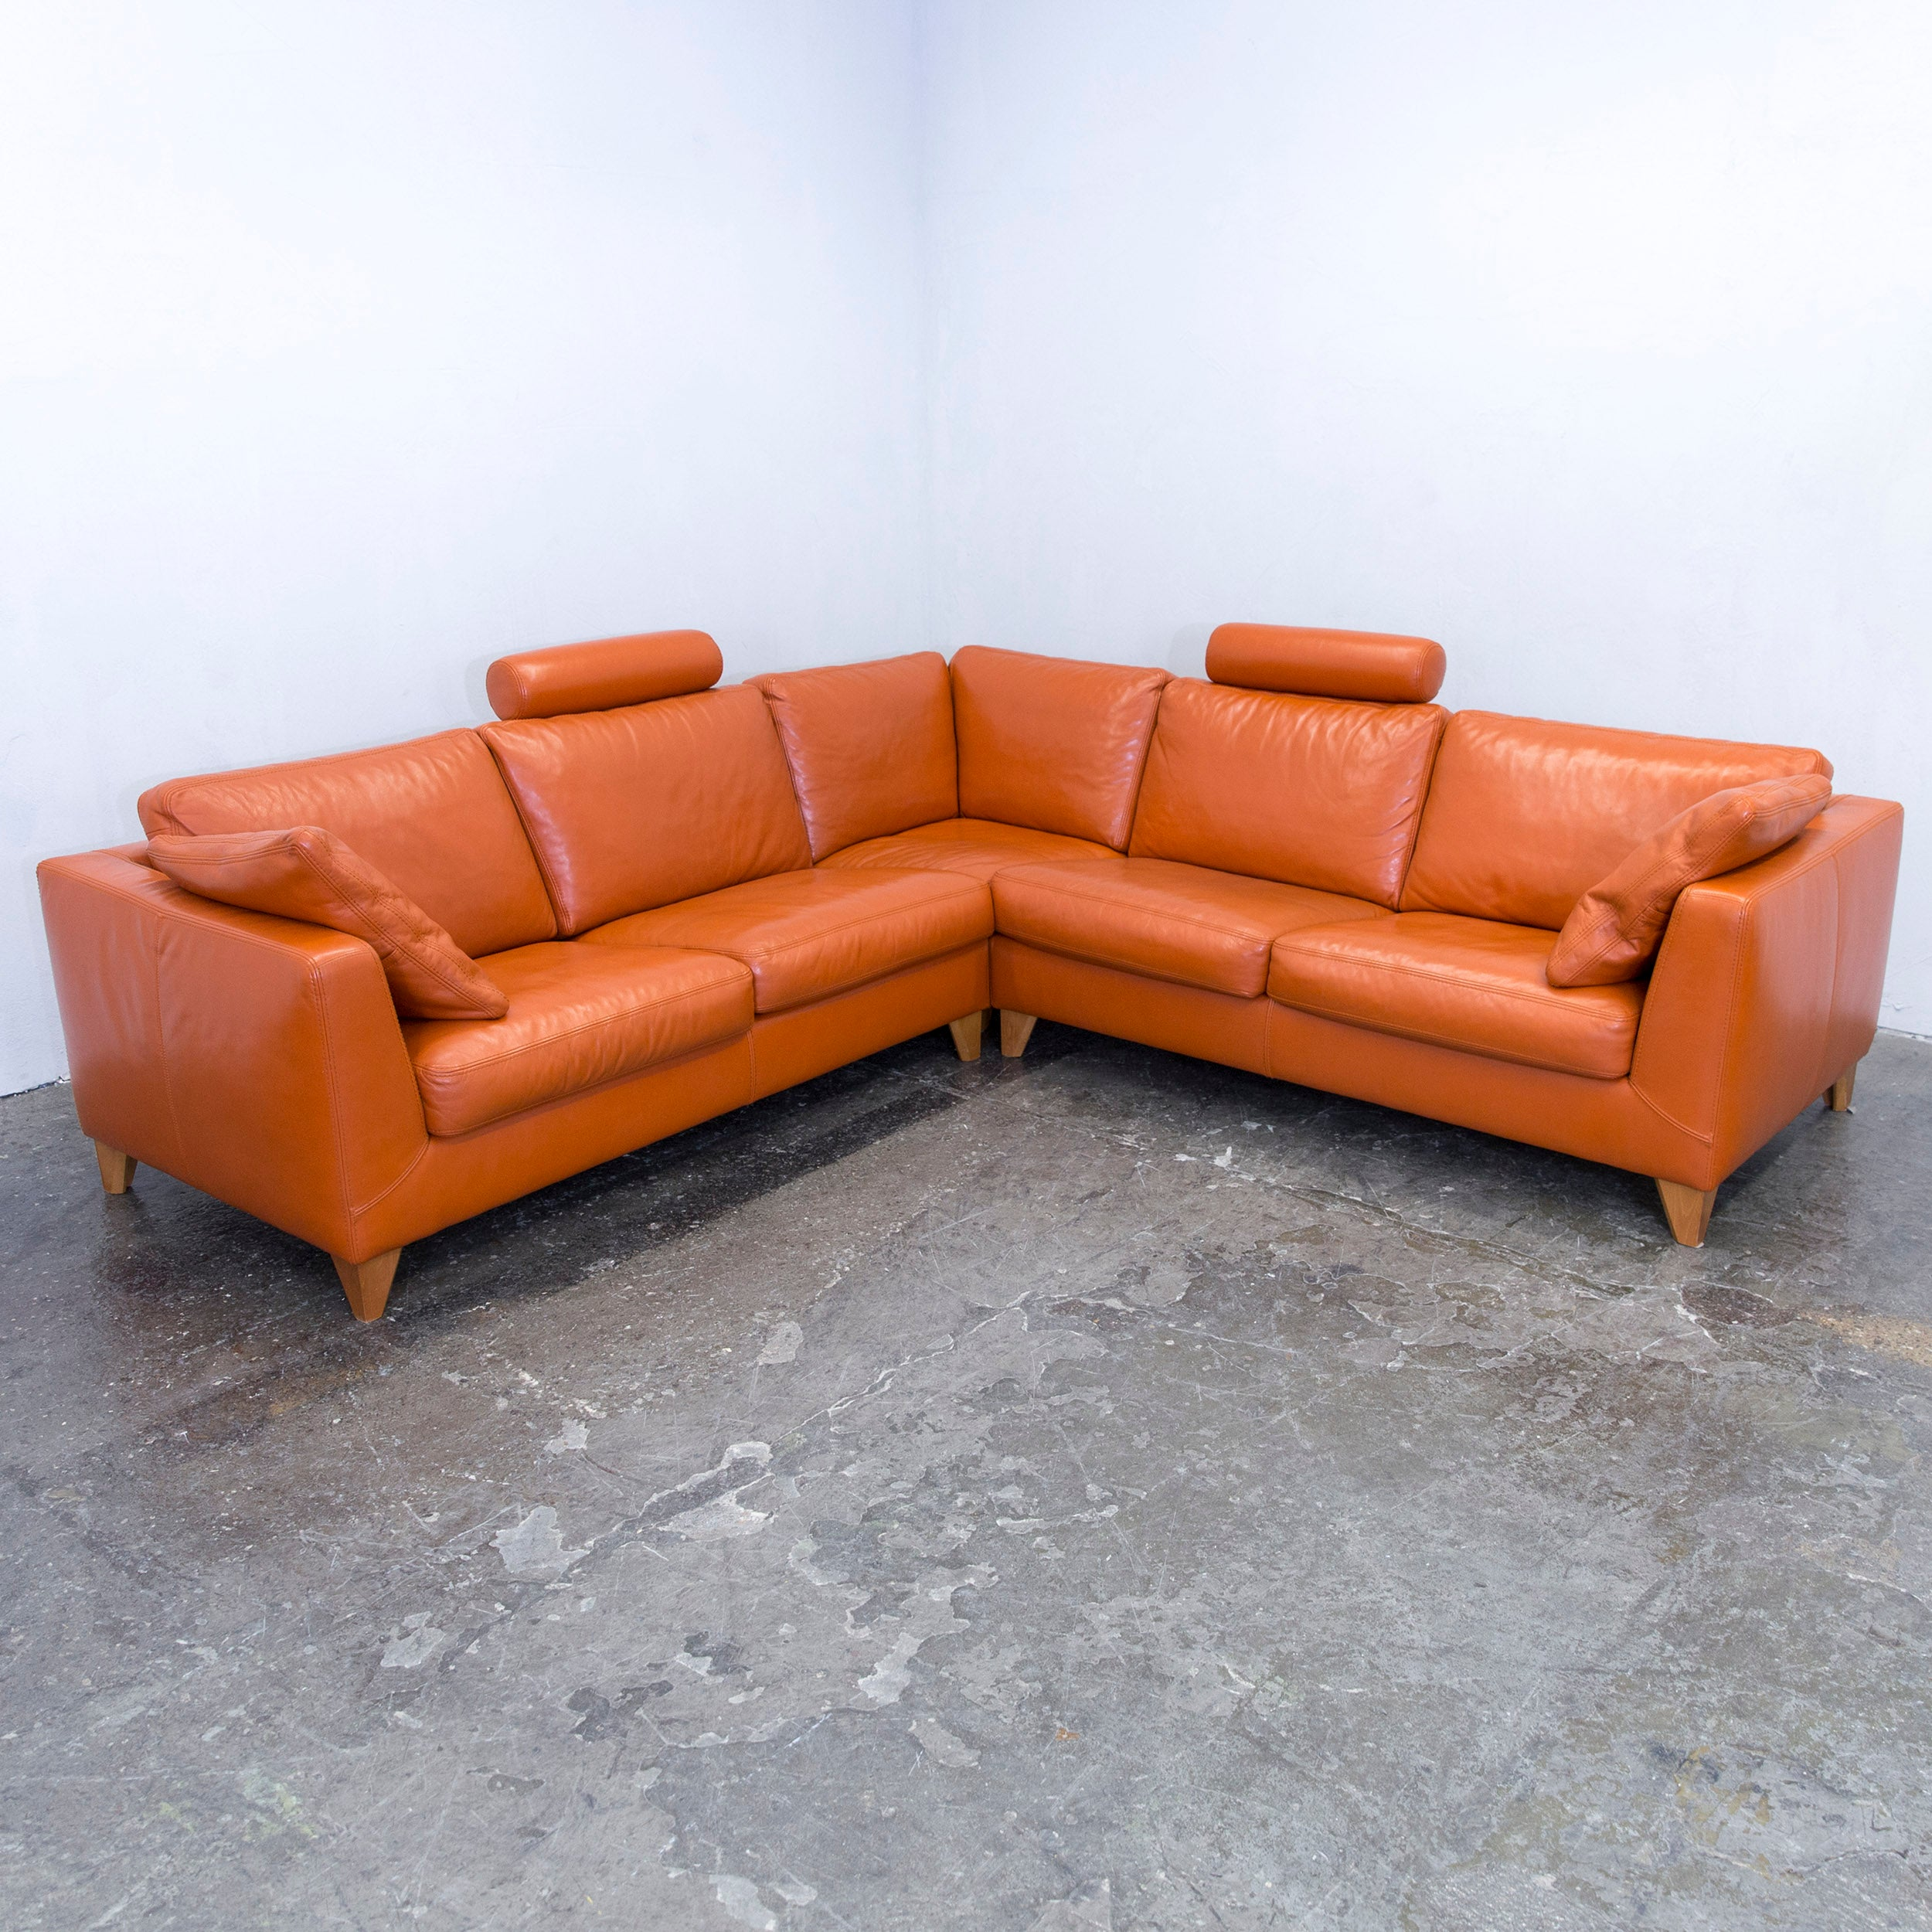 Sofa Leder Cognac machalke designer cornersofa set leather cognac orange function